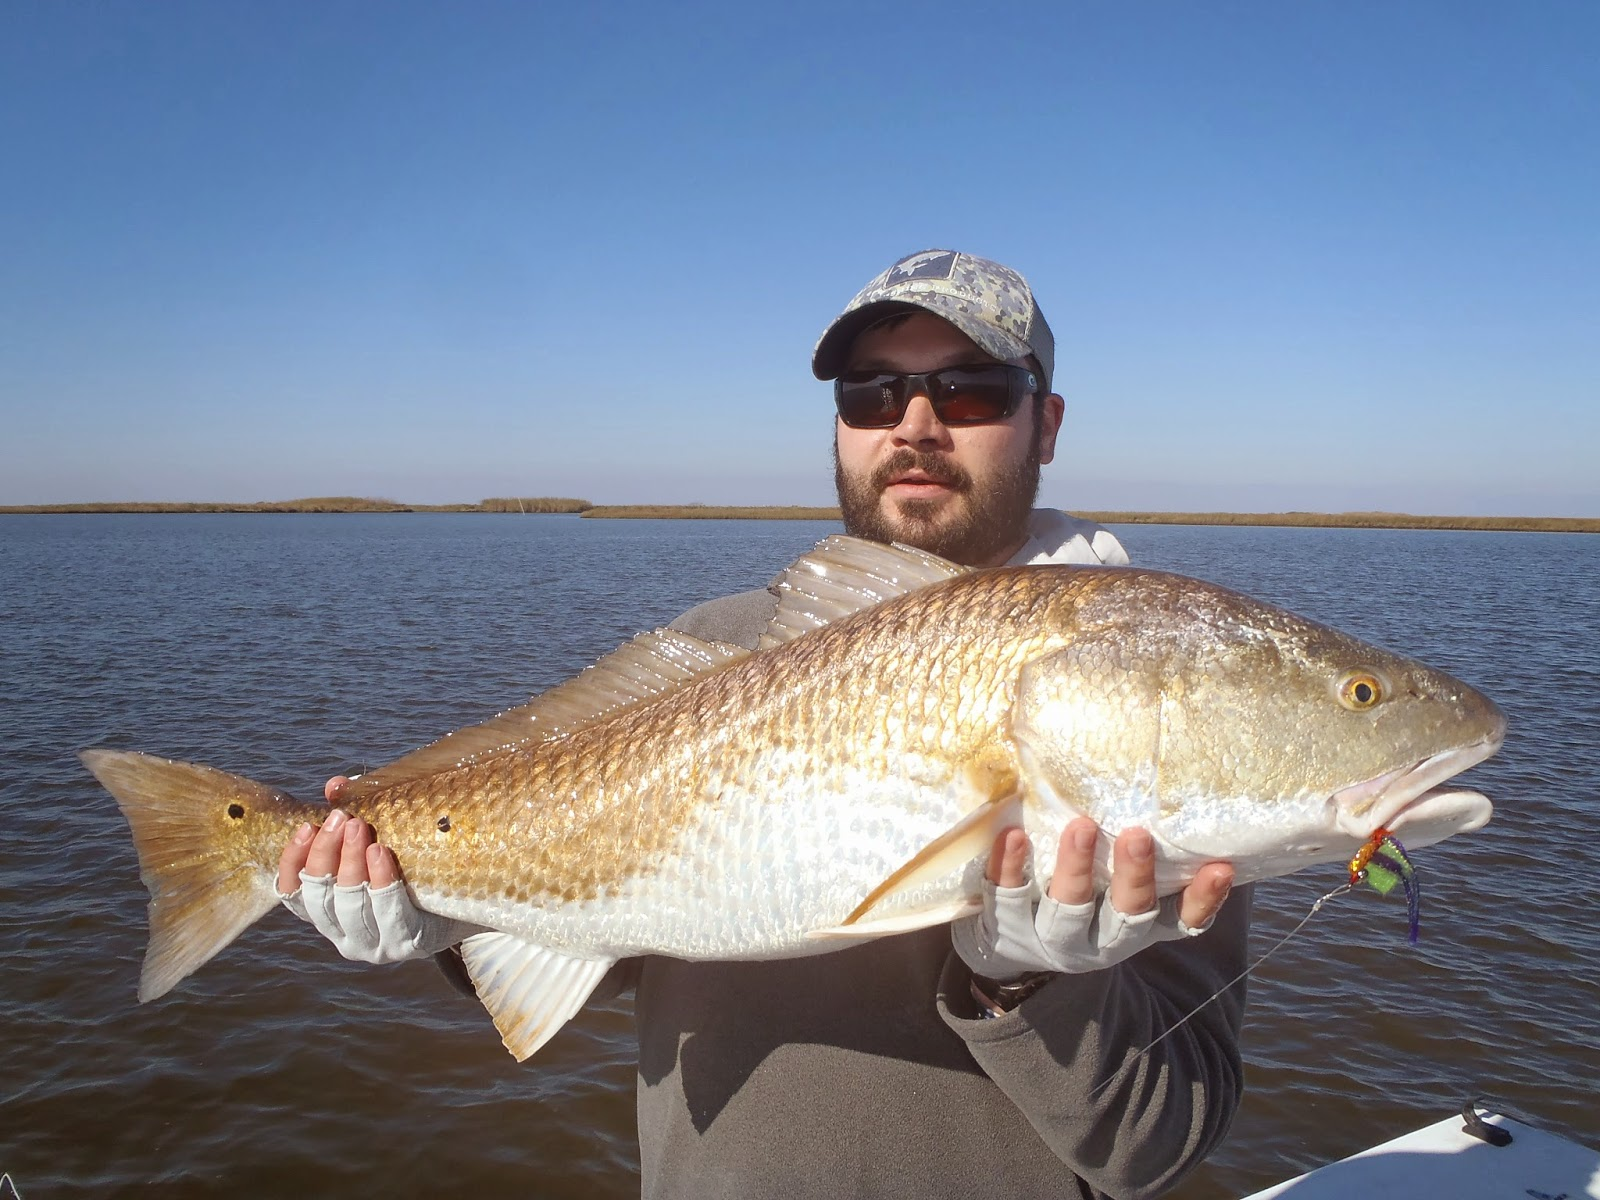 Redfishing louisiana a guides journey louisiana fly for Louisiana redfish fly fishing